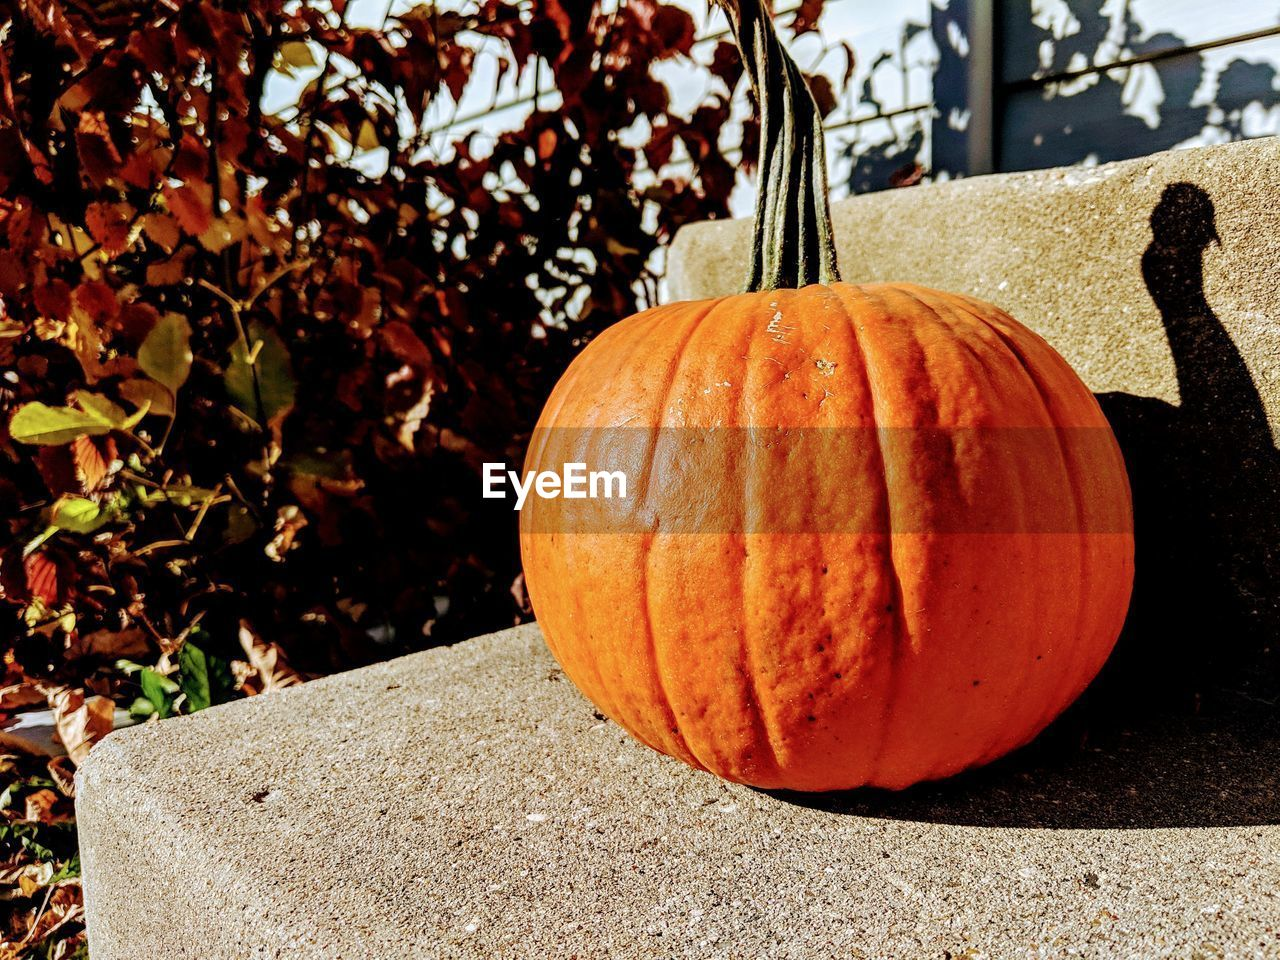 food, pumpkin, food and drink, vegetable, sunlight, orange color, healthy eating, no people, shadow, focus on foreground, day, wellbeing, nature, autumn, freshness, close-up, plant, outdoors, still life, single object